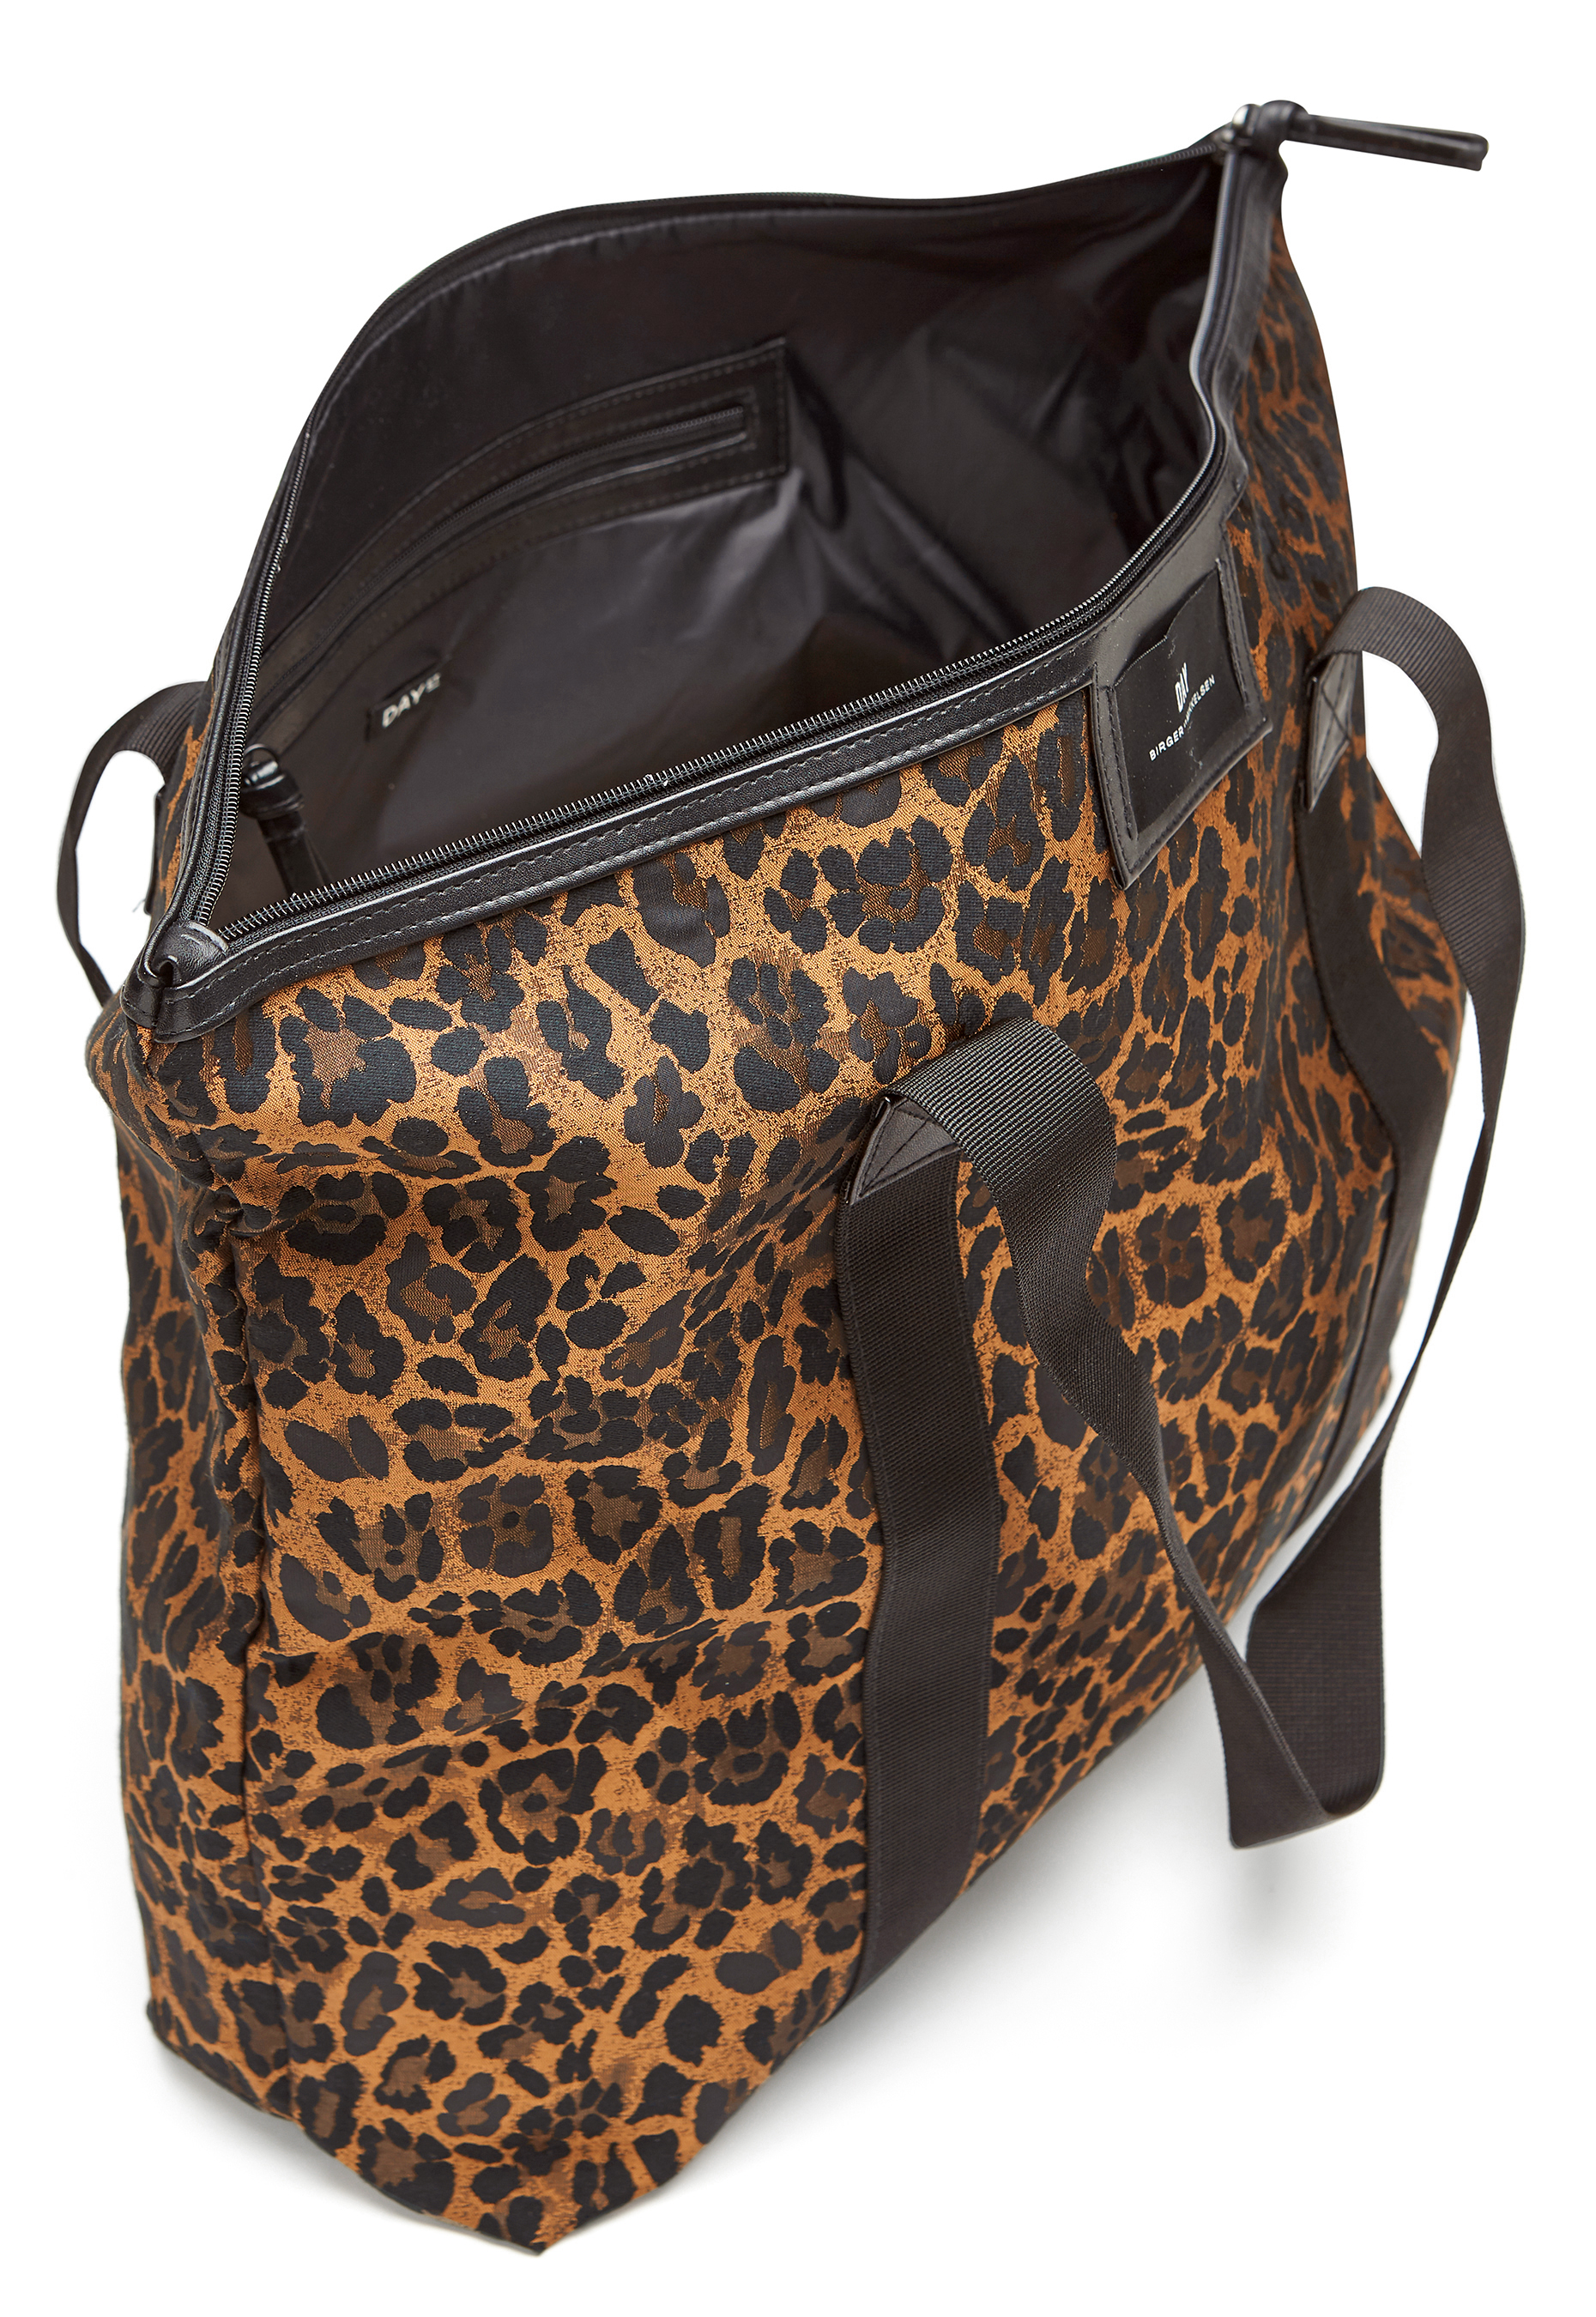 DAY ET Day Gweneth Leopard Bag 15001 Copper Bubbleroom